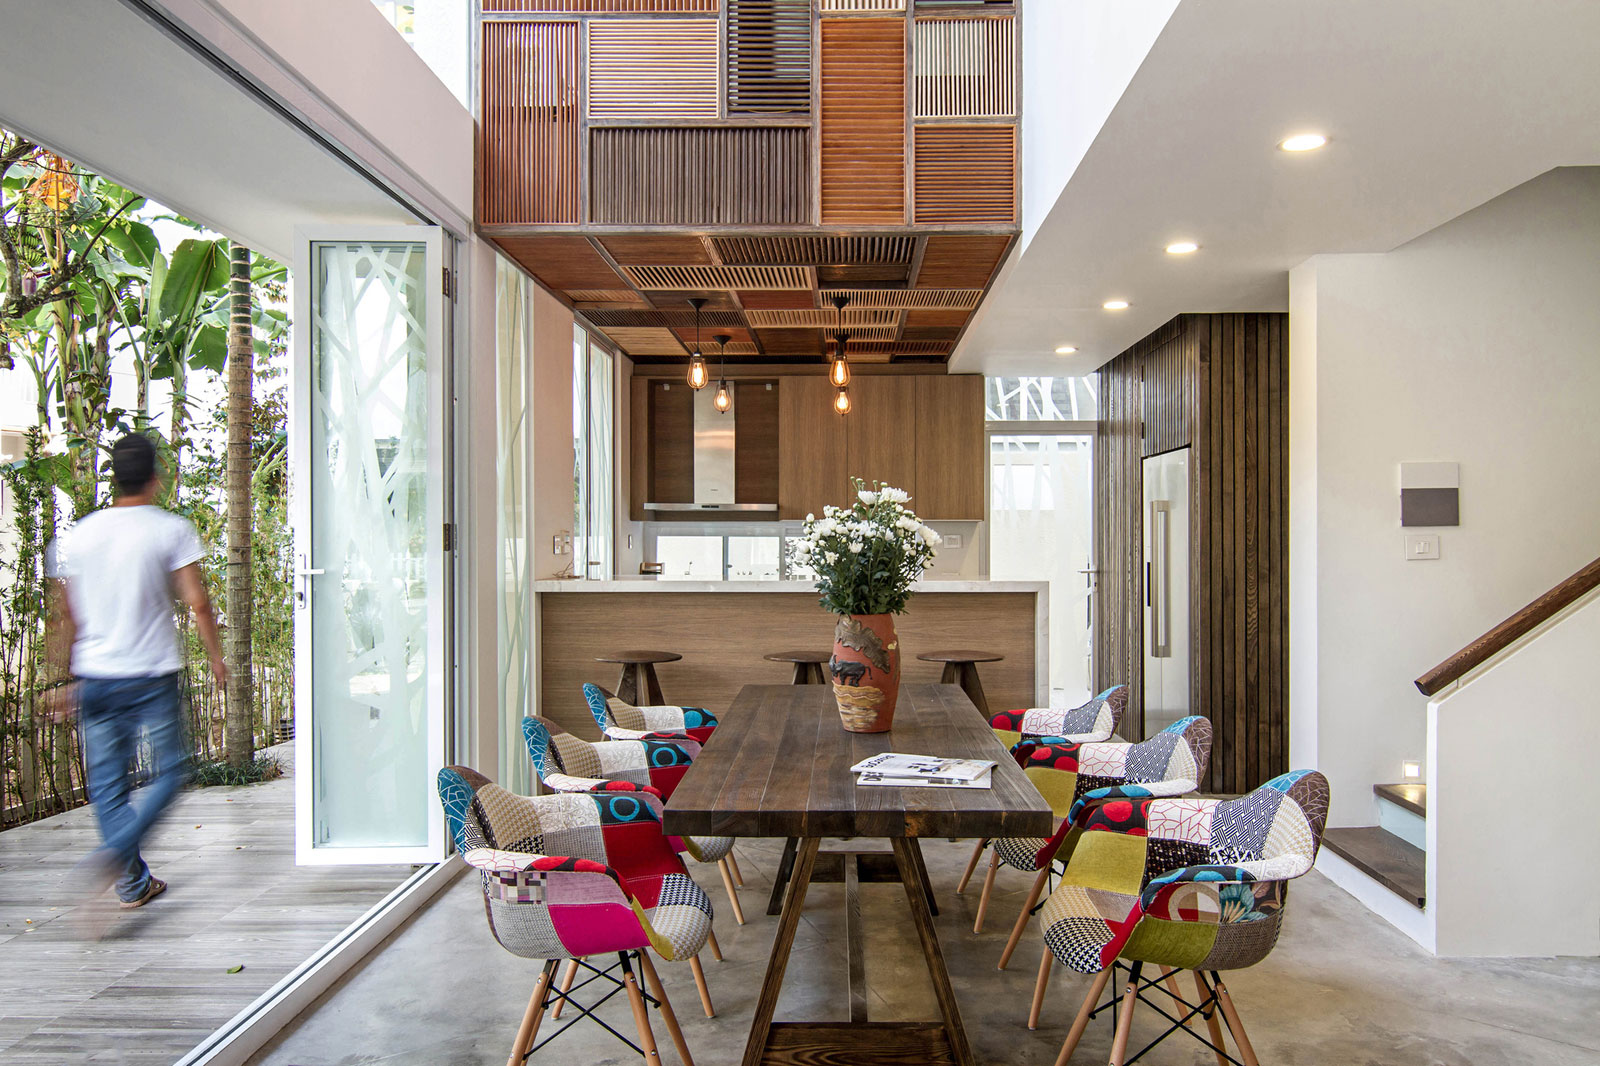 EPV Semi-Detached House Located in Ecopark Green Urban Area, Vietnam by AHL architects associates-15